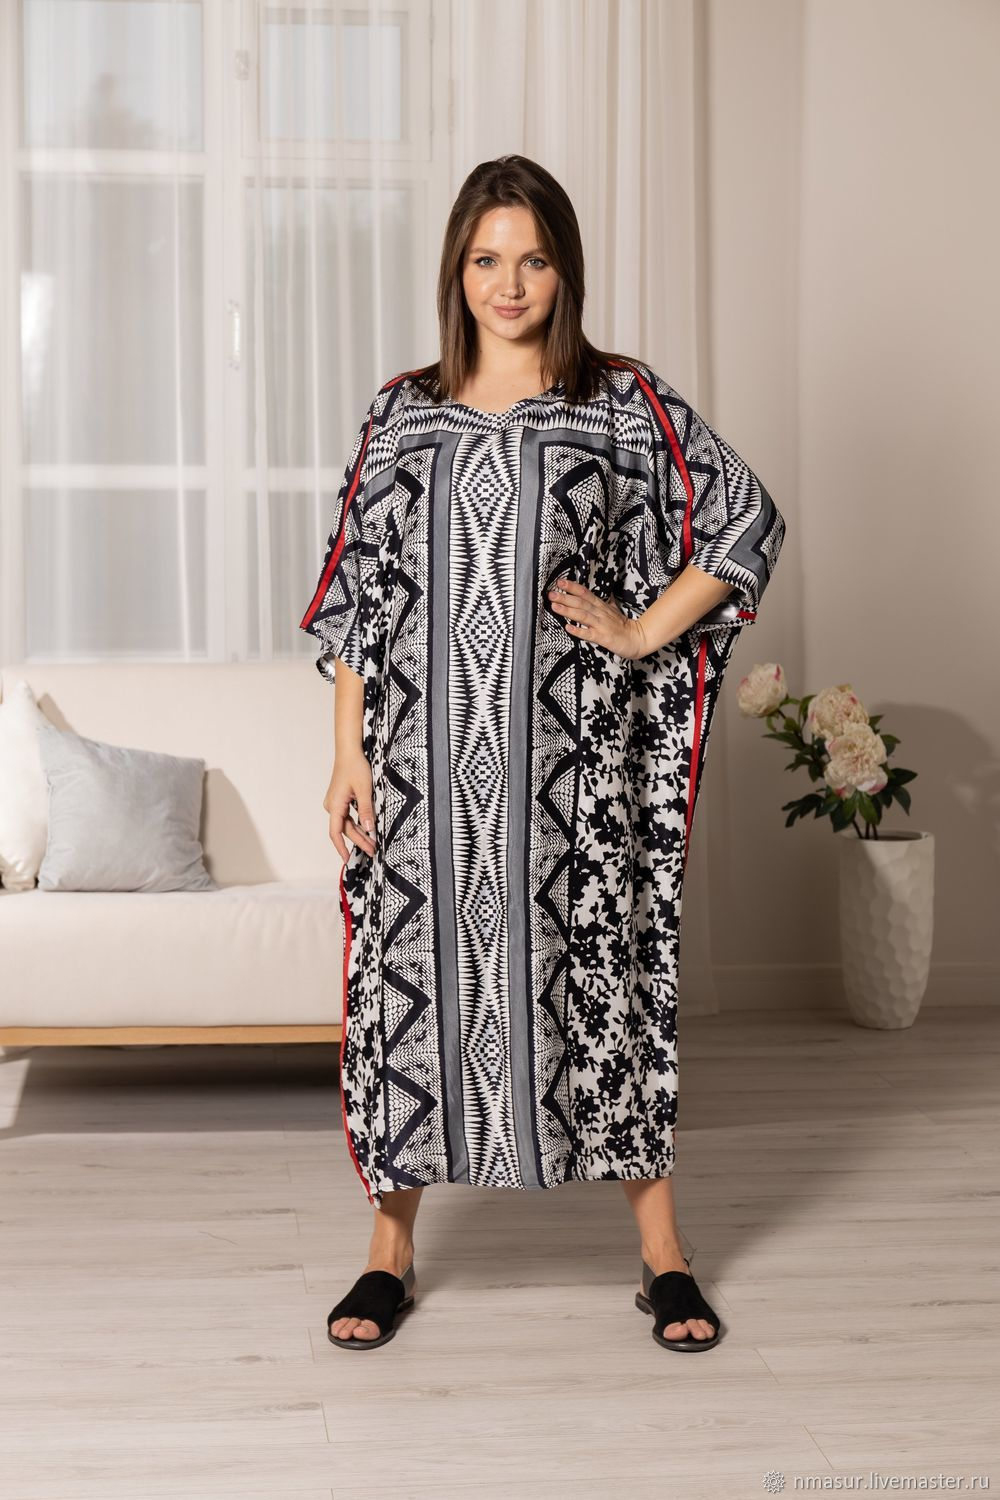 A chic floor-length oversize dress made of viscose with stripes, Dresses, Novosibirsk,  Фото №1